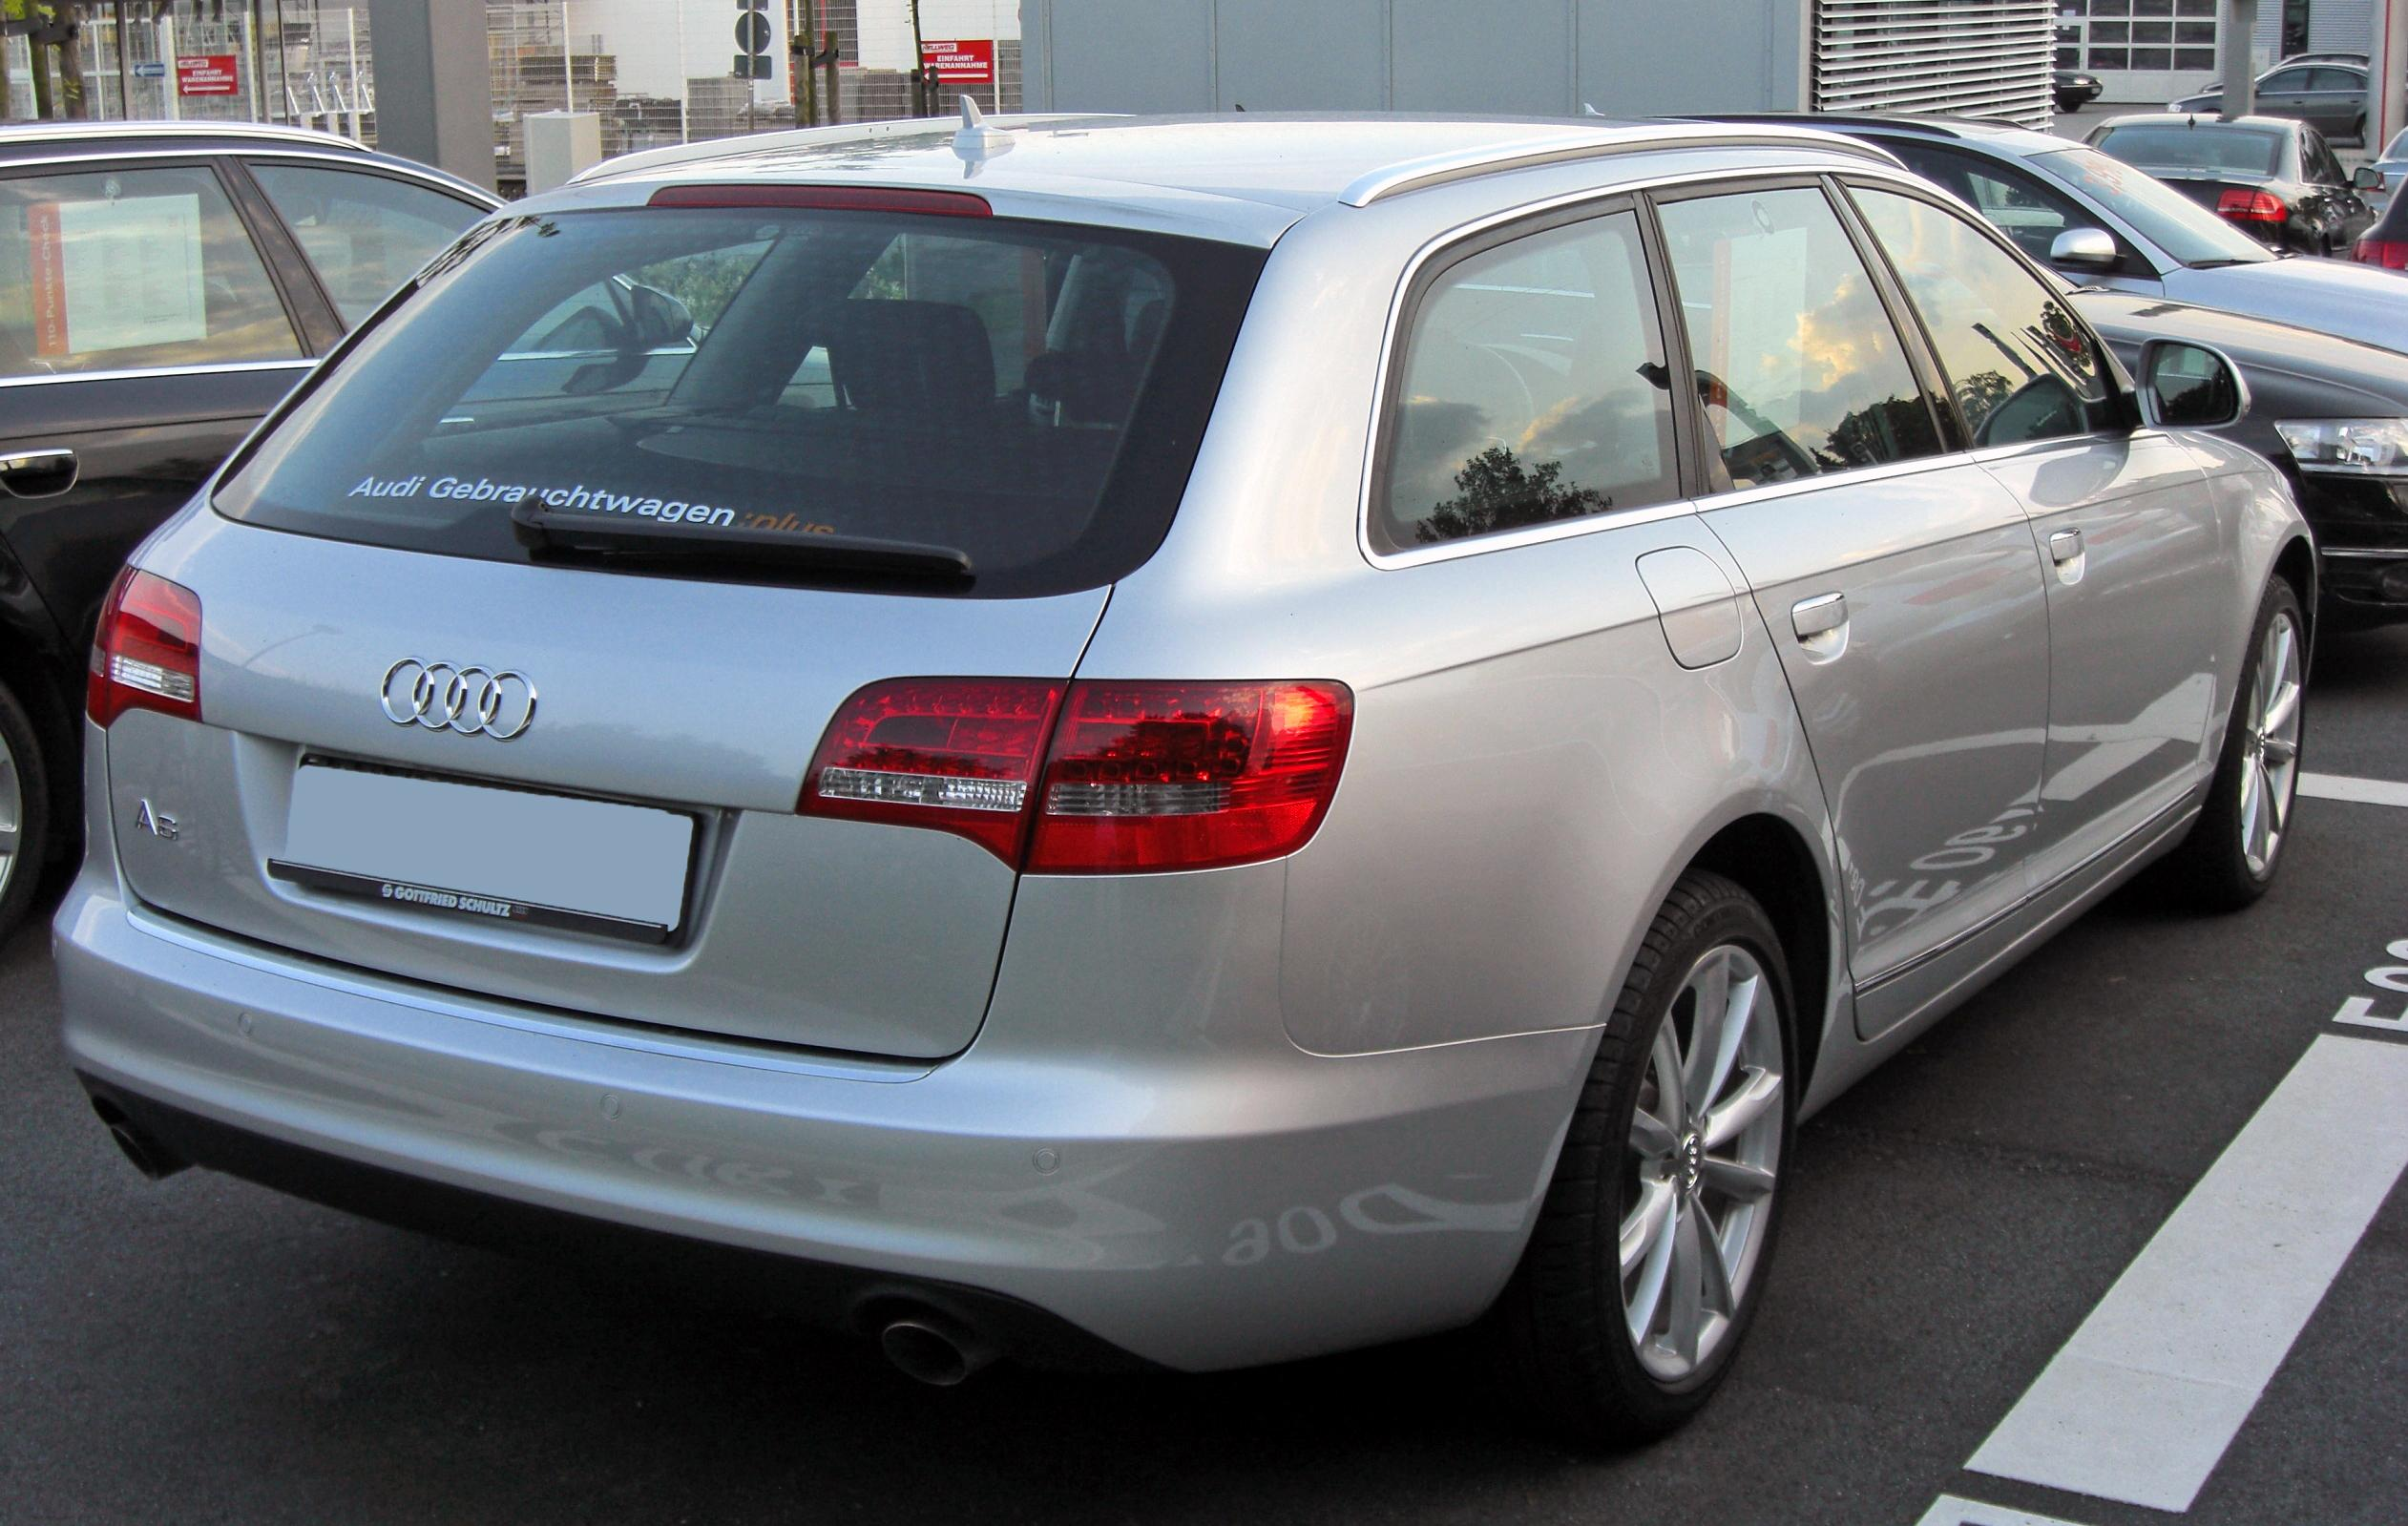 file audi a6 c6 avant facelift 20090803 rear jpg wikimedia commons. Black Bedroom Furniture Sets. Home Design Ideas